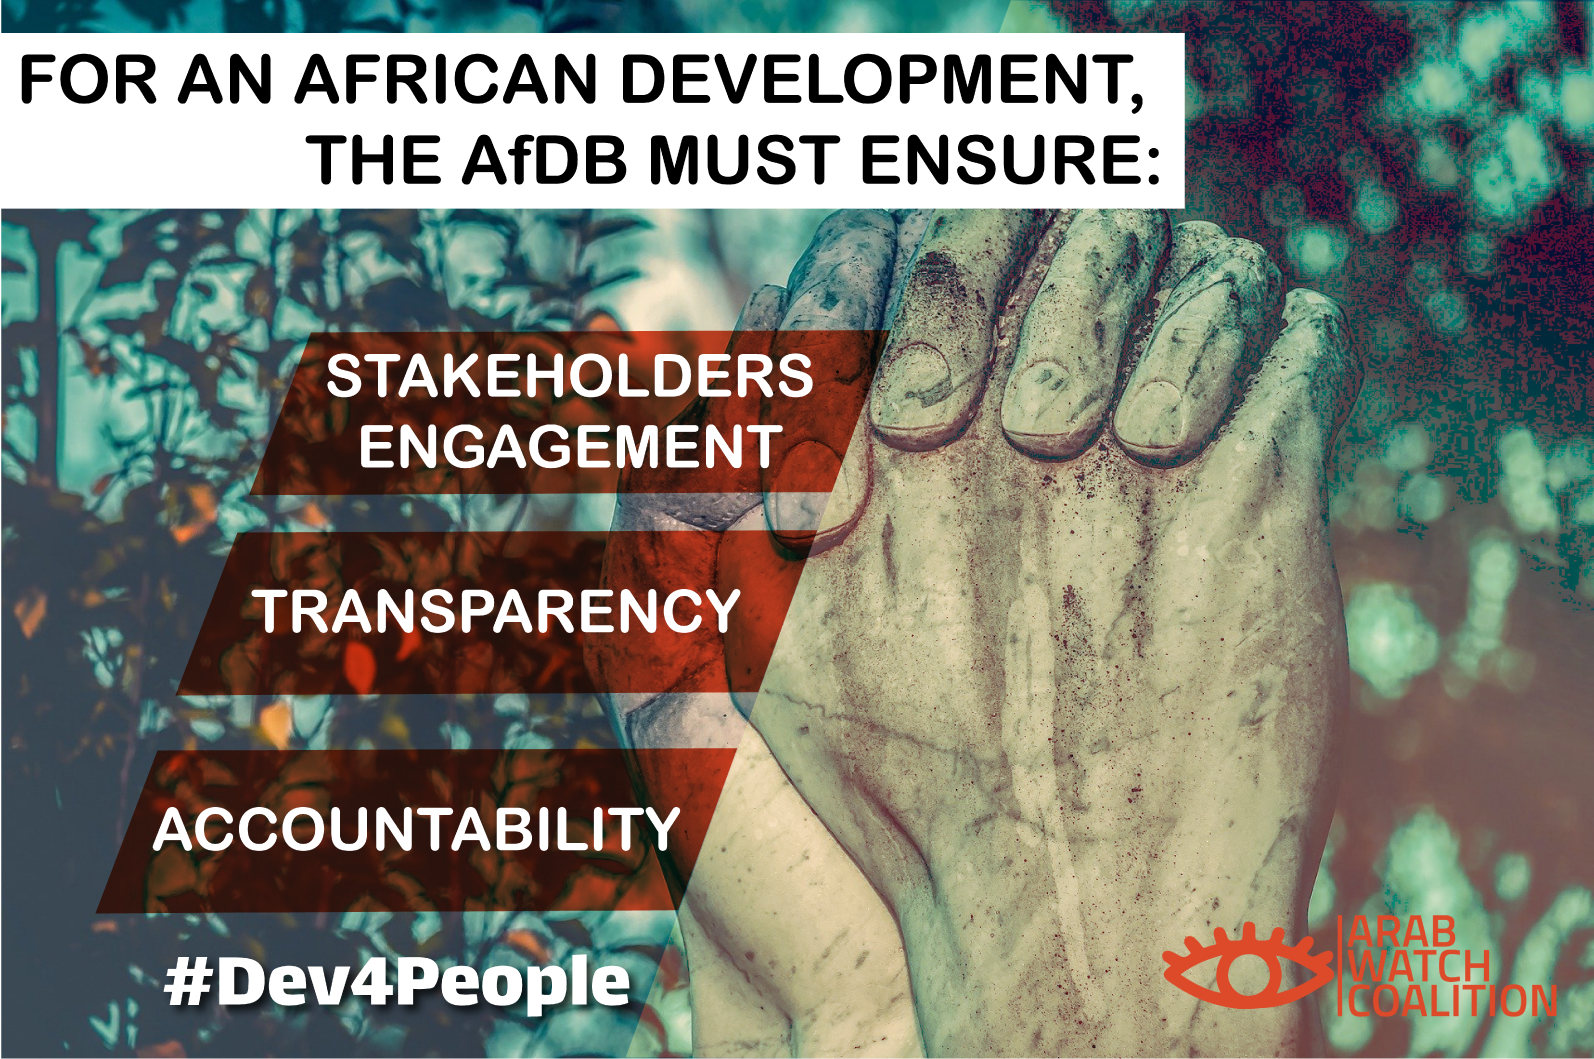 CSOs Comments on the AfDB's DAI Policy Implementation Review